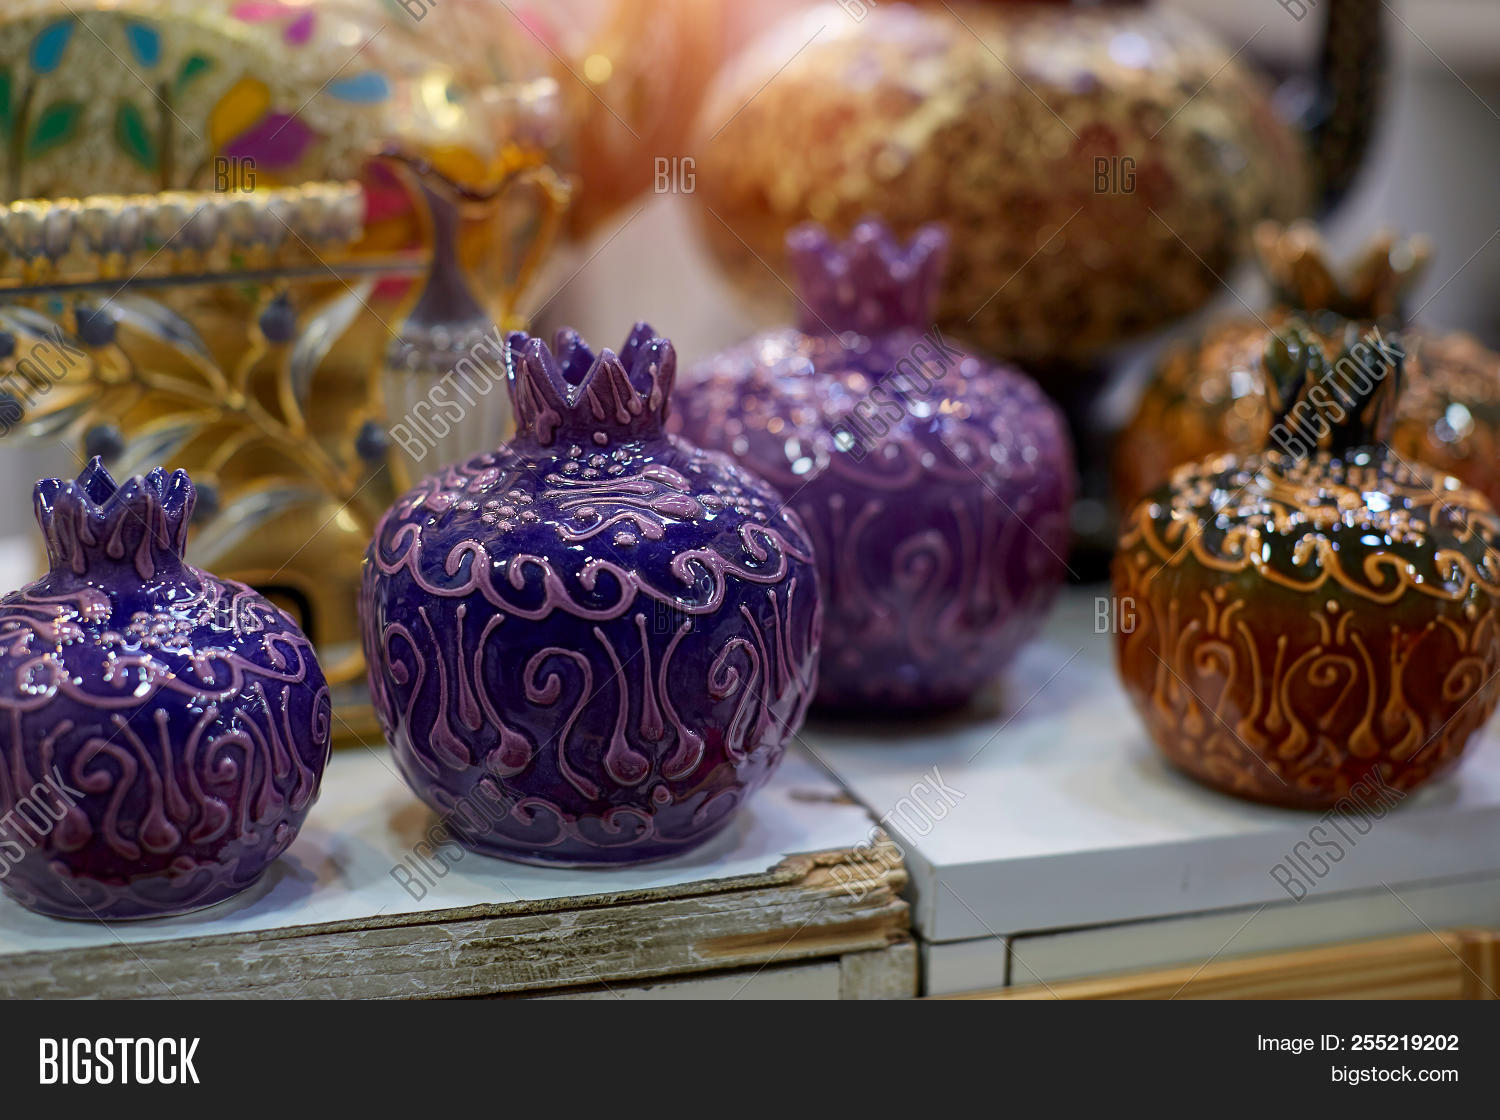 Rosh hashana pomegranates made of glass in souvenir stores in the jerusalem